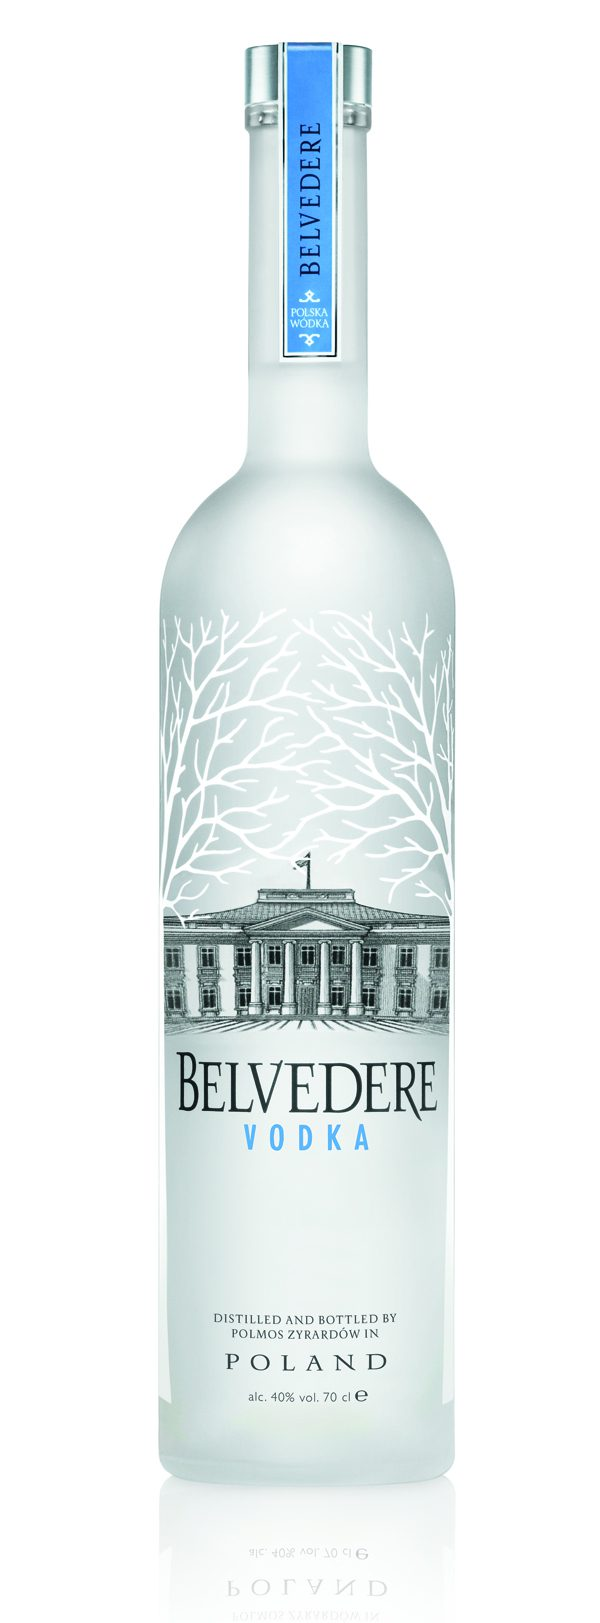 BELVEDERE Vodka - 39€